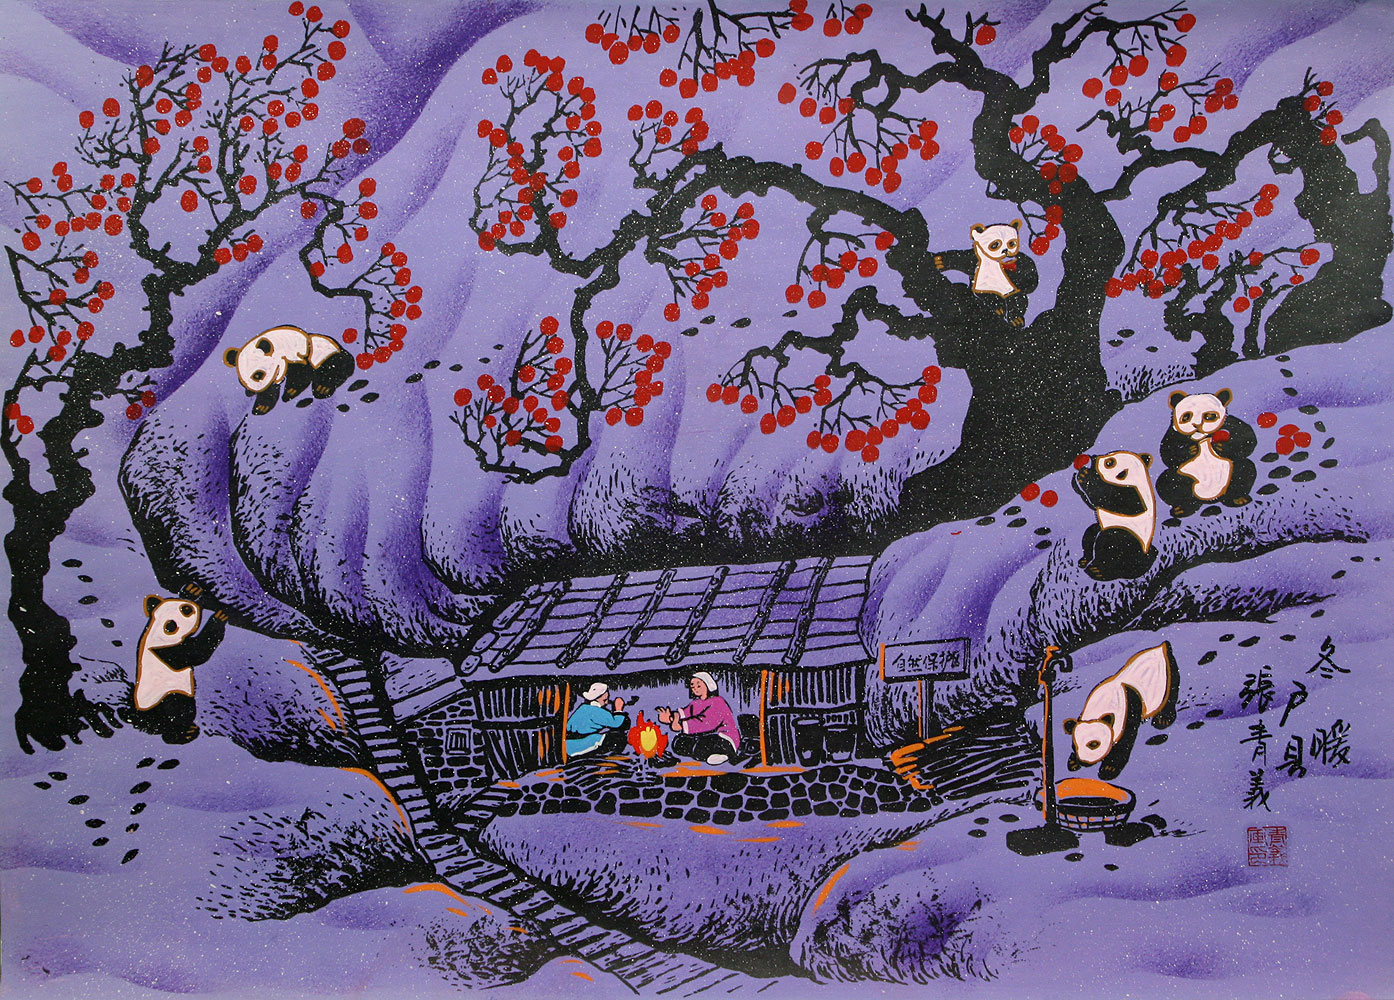 Warm Winter - Panda Bear - Folk Art Painting